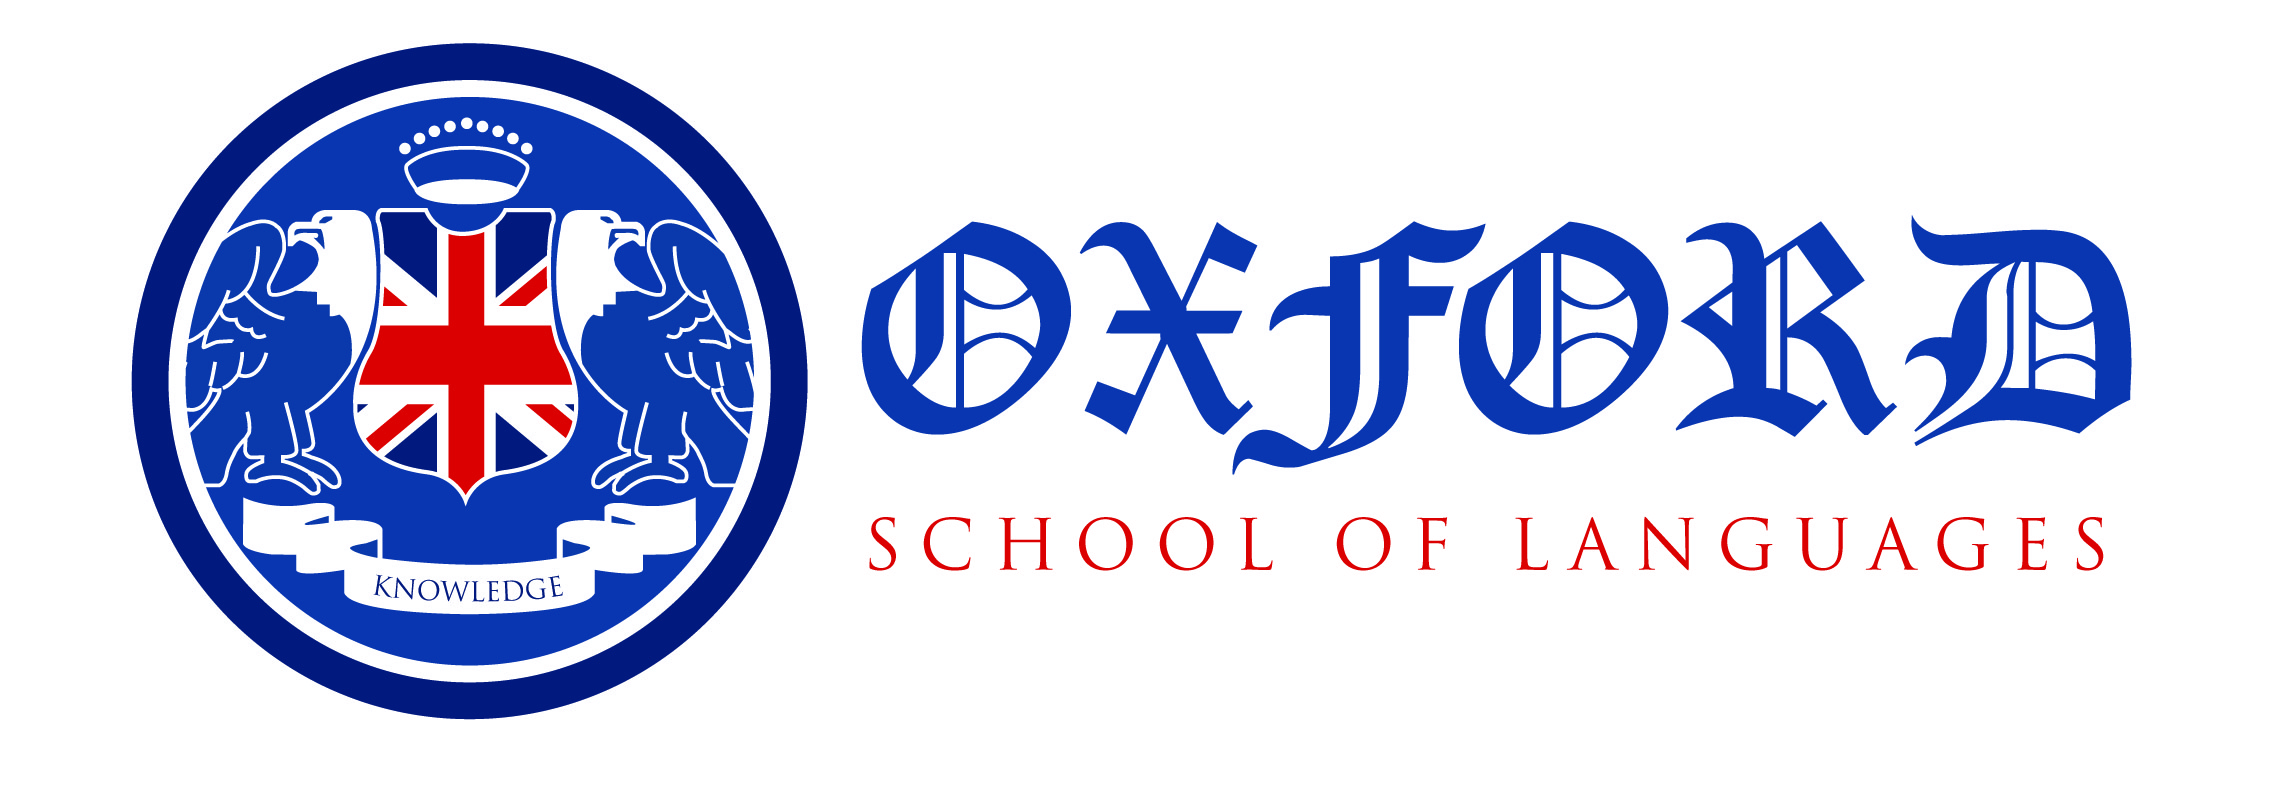 Oxford School Languages